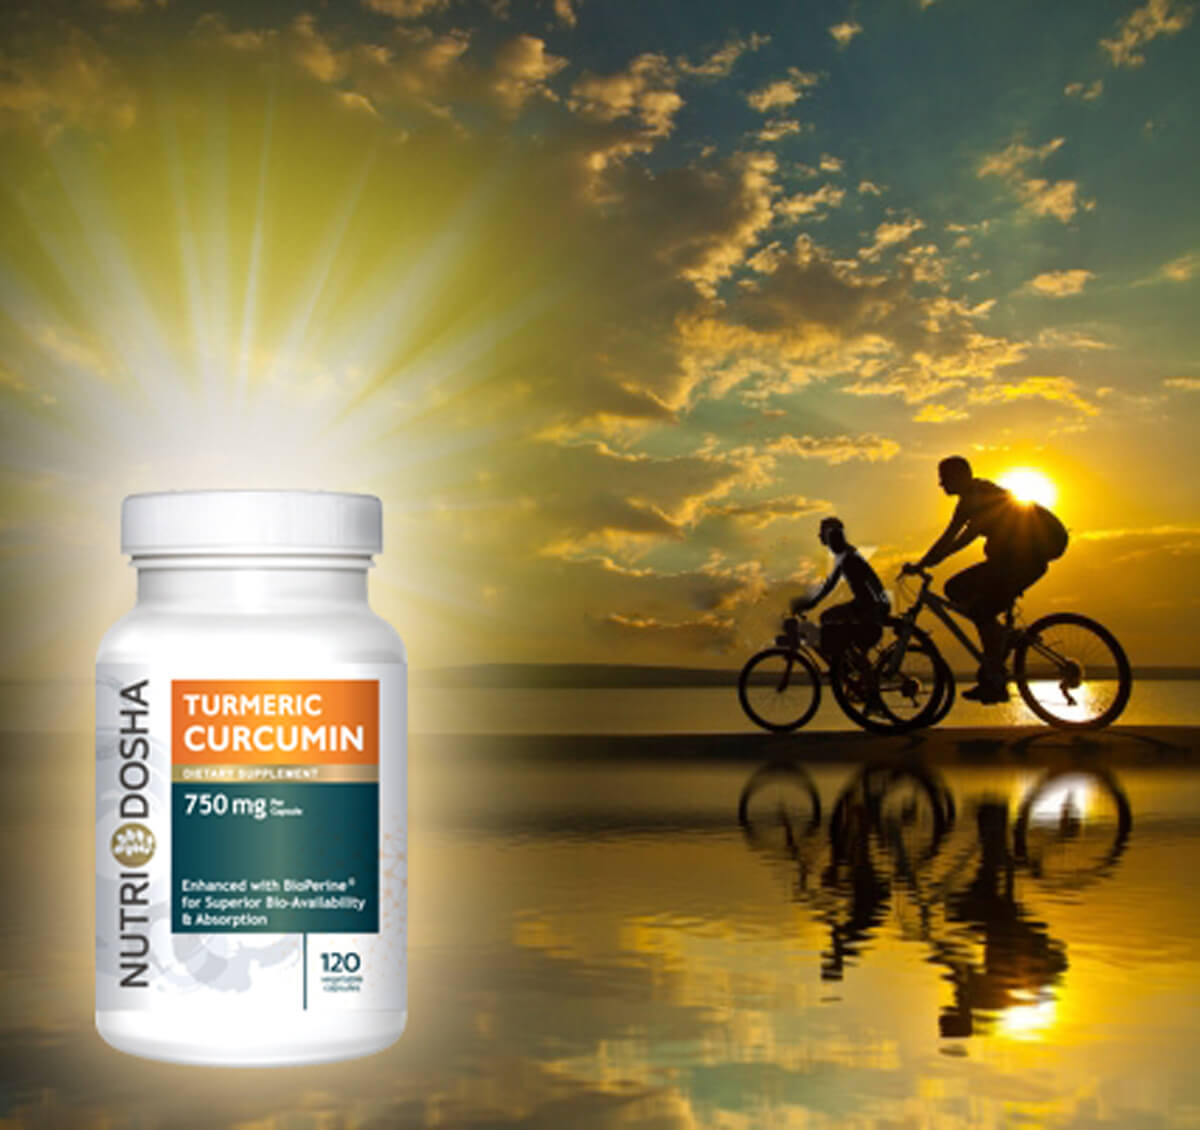 Alleviate Joint and arthritis pain with powerful anti-inflammatory Turmeric Curcumin with Bioperine by Nutridosha